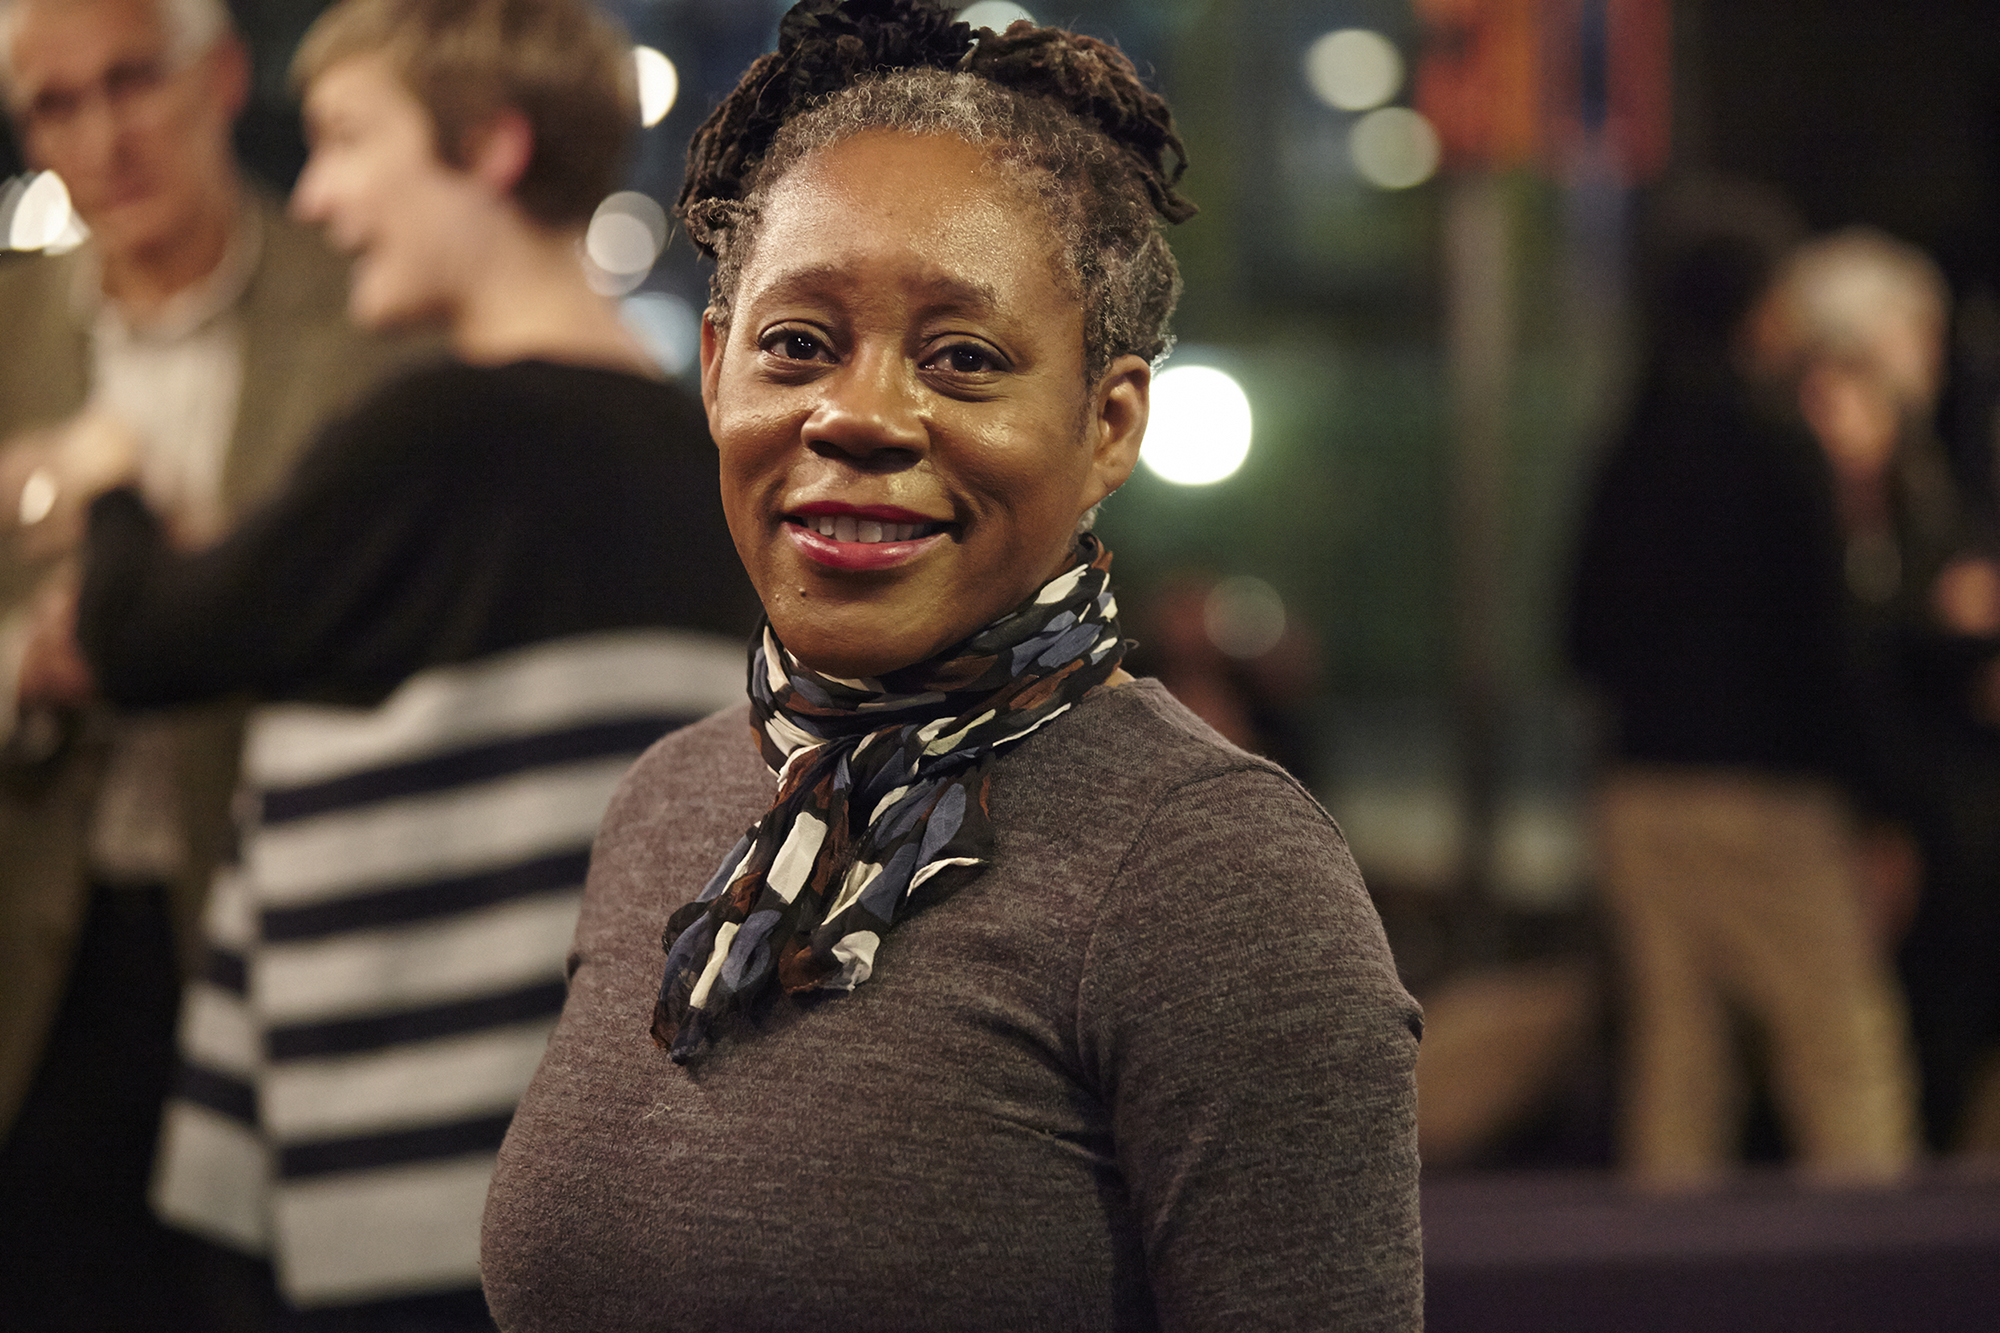 Sonia Boyce first black woman to represent GB at Venice Biennale